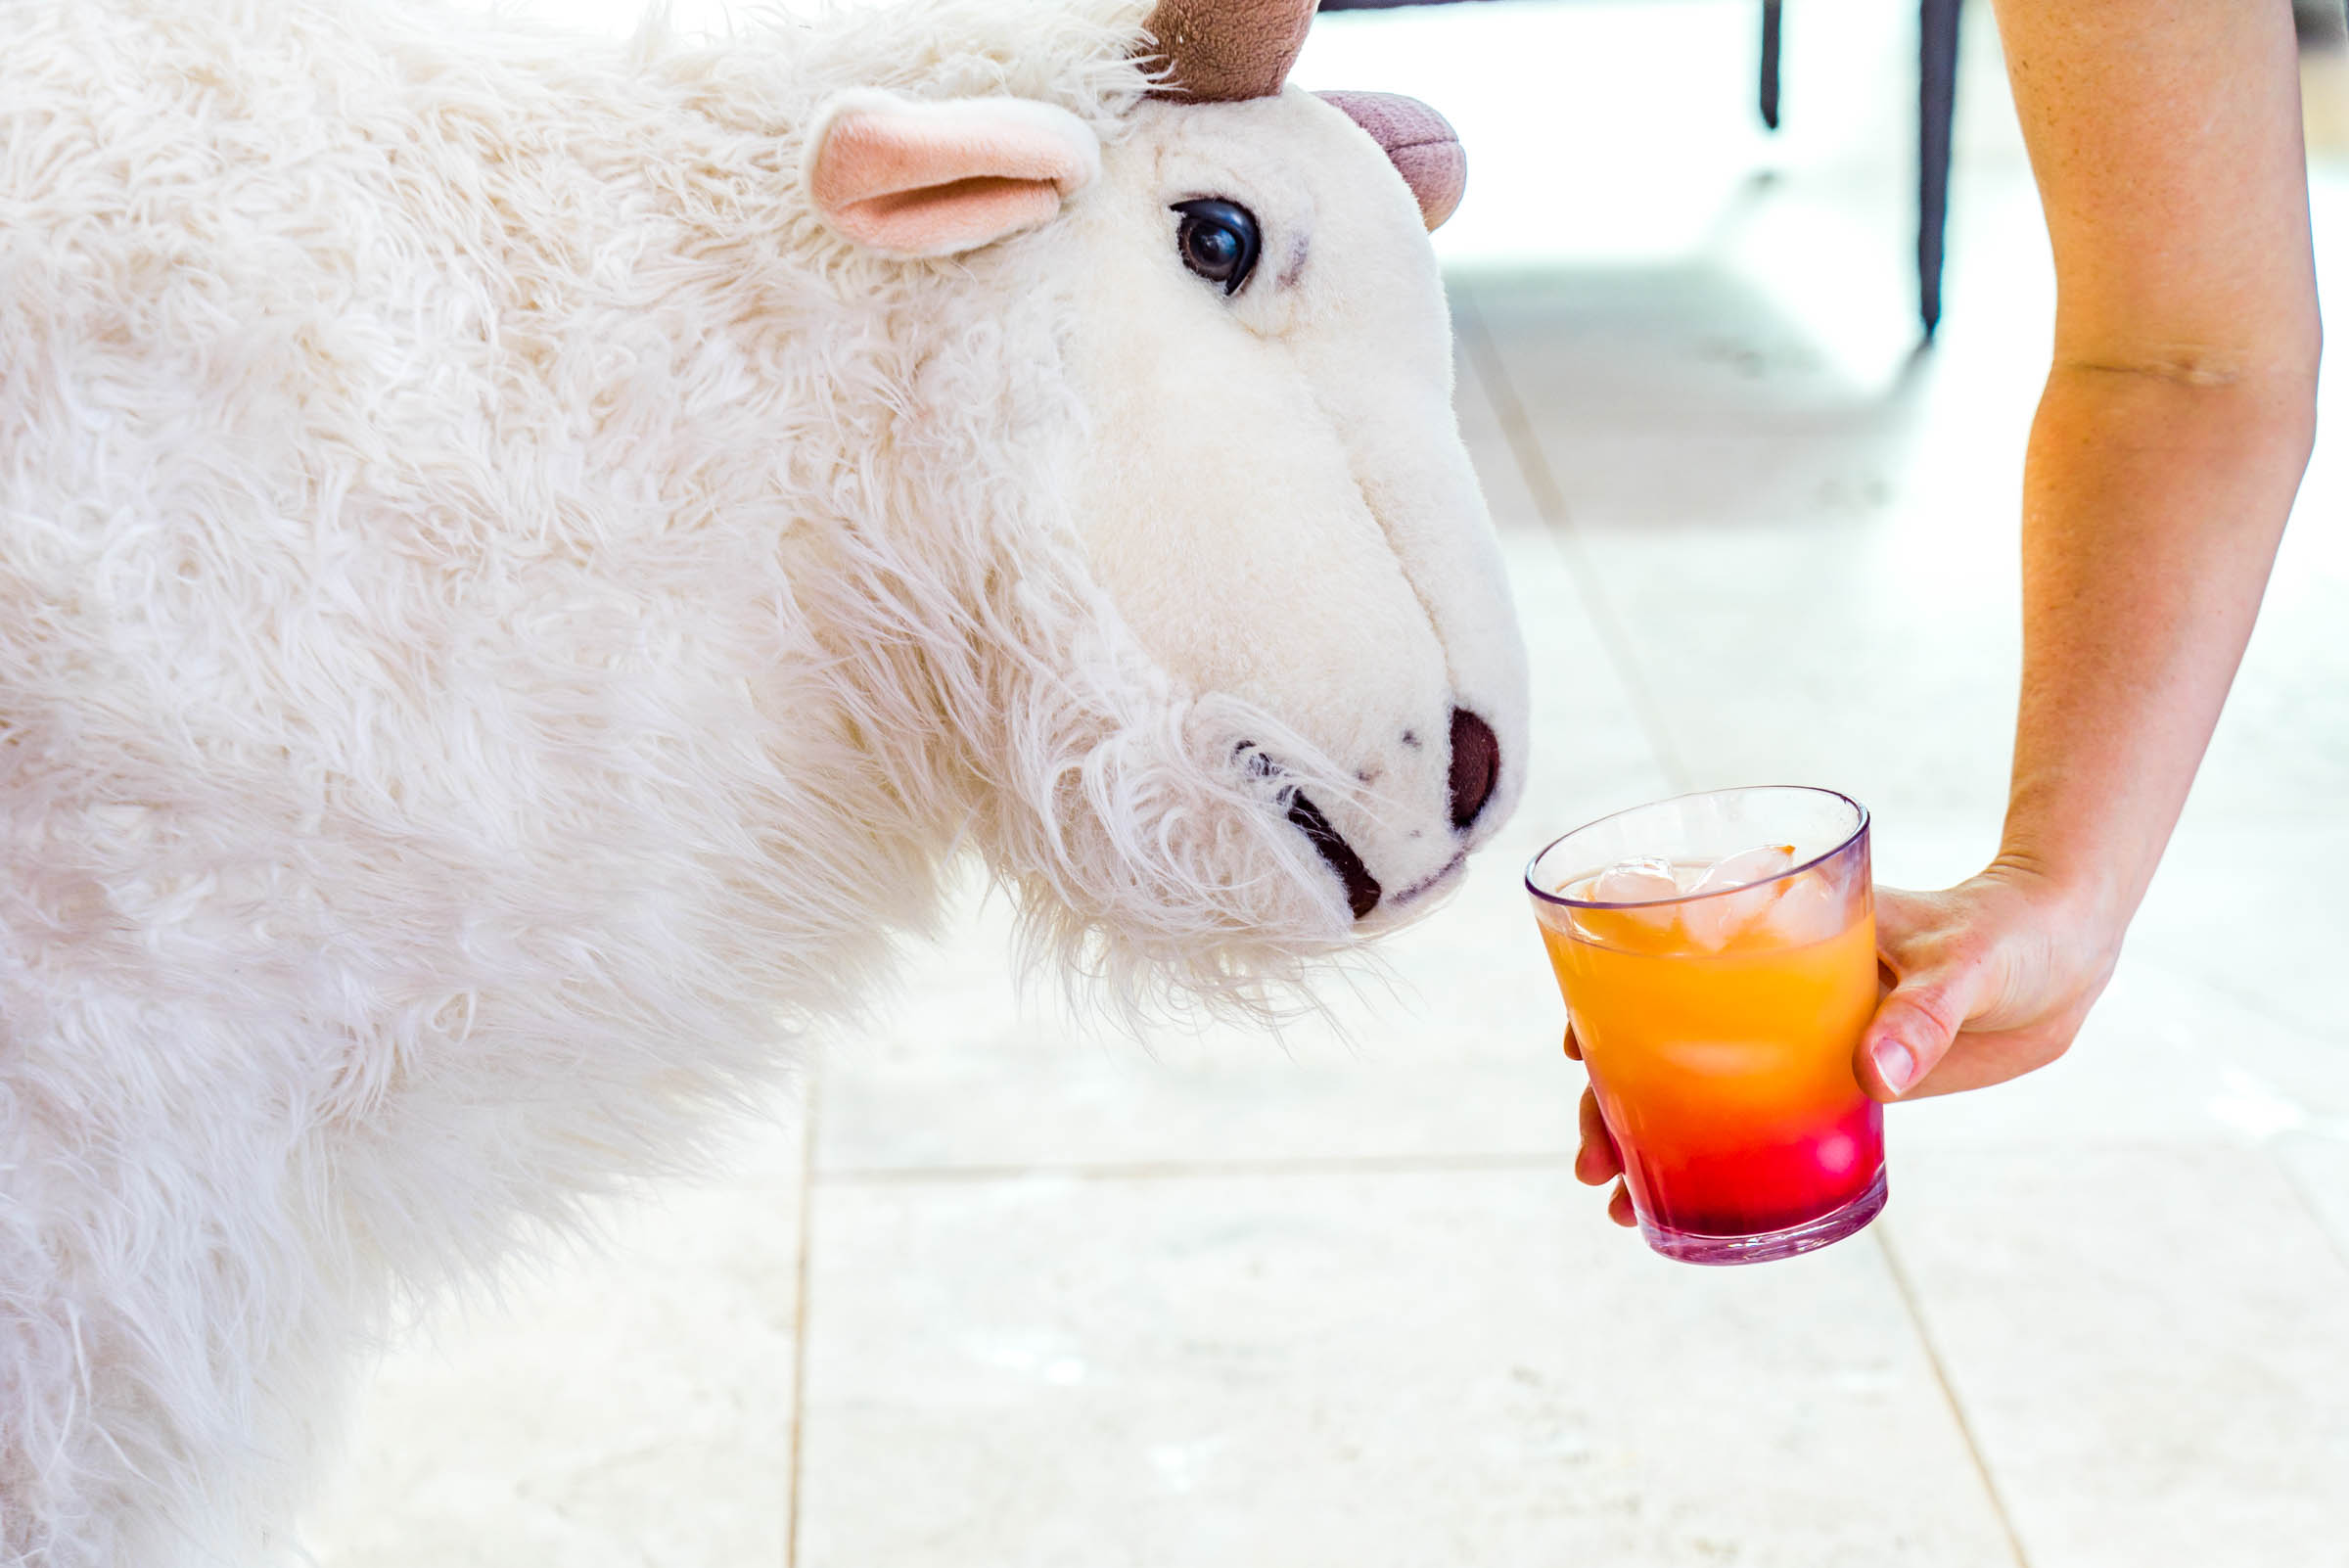 Oh... And there's a goat plus unlimited tequila.